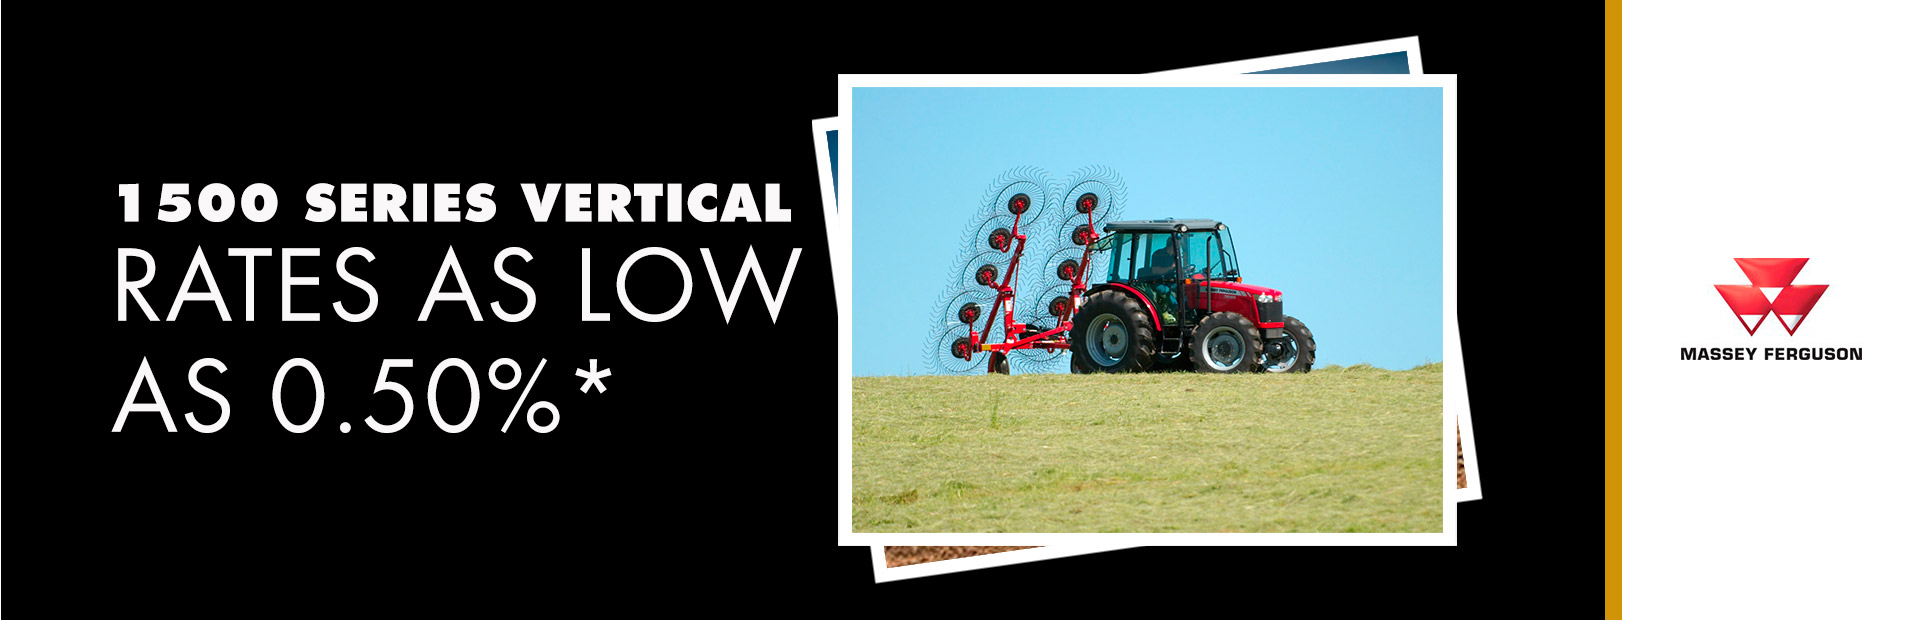 Massey Ferguson: 1500 Series Vertical - Rates as low as 0.50%